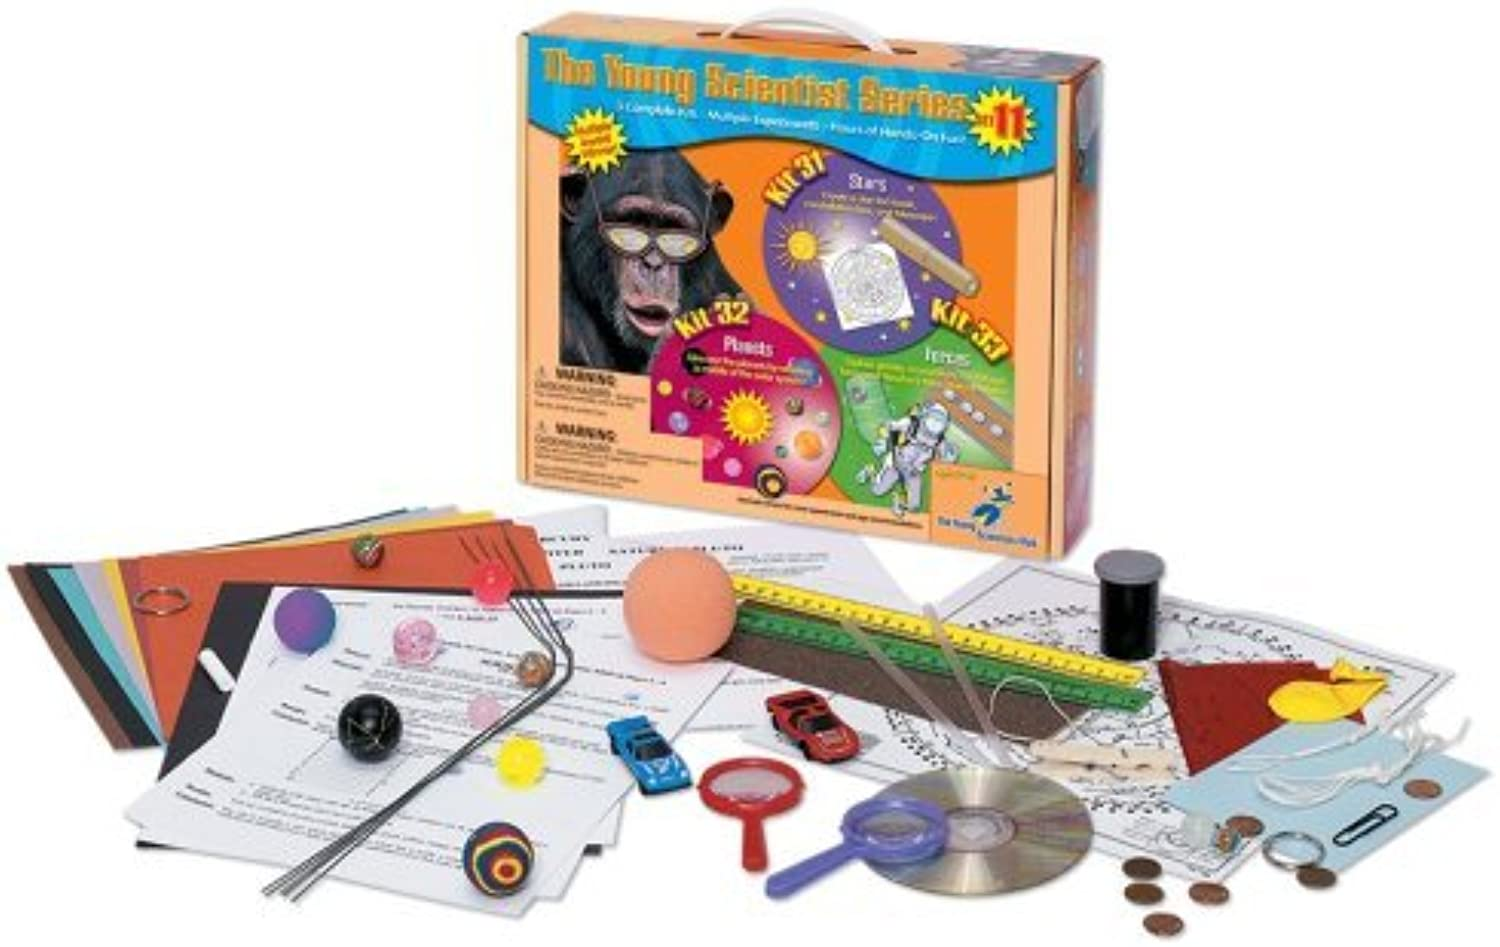 promociones de equipo Young Scientist Series - Set 11  Estrellas Estrellas Estrellas (Kit 31) - Planets (Kit 32) - Forces (Kit 33) by The Young Scientists Club  forma única